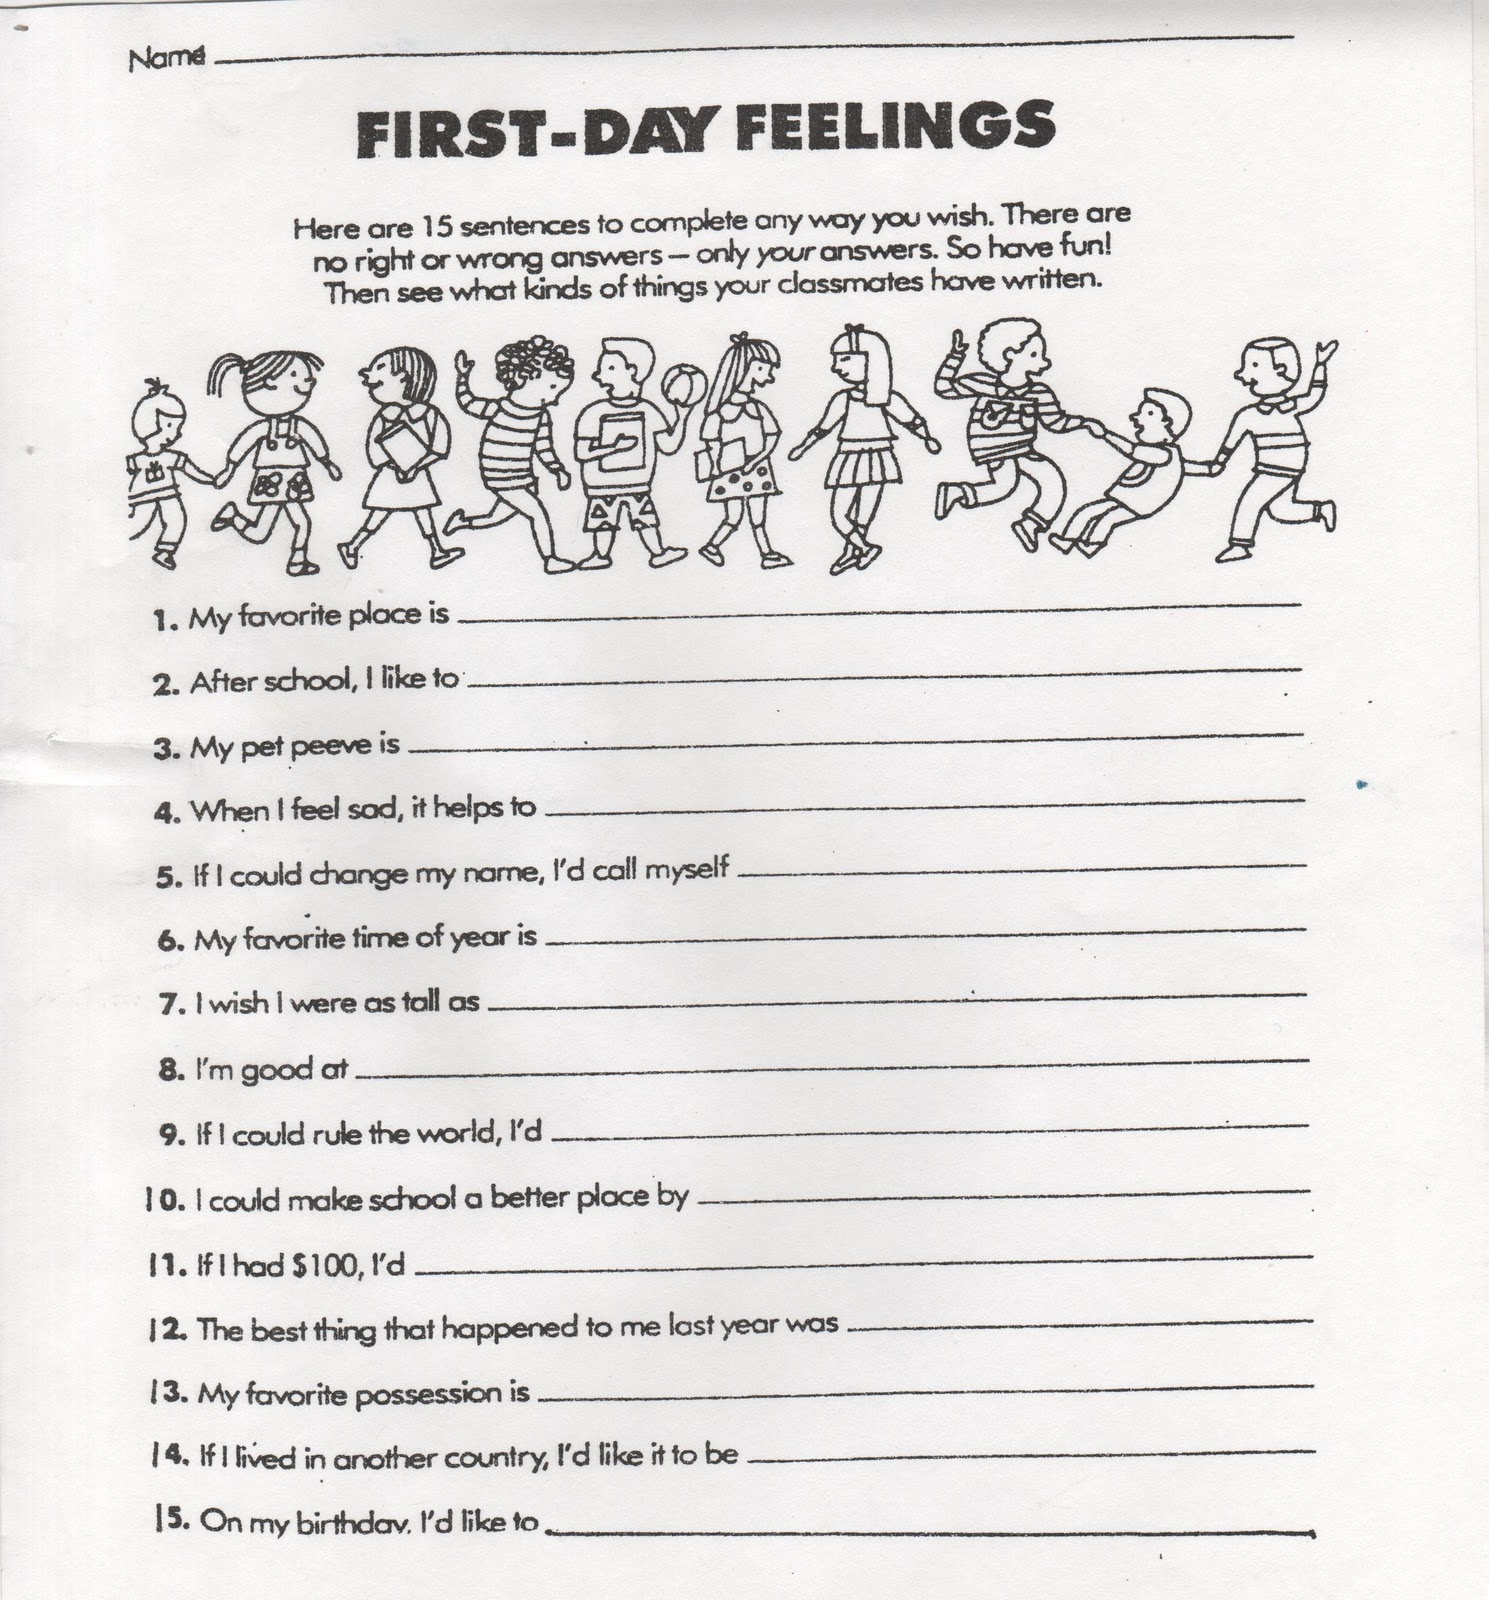 Holidays Back To Worksheets Resources likewise Back To School Getting To Know You Cl Activity in addition  as well Get to Know You Packets for Sch Therapy    Sch Room News additionally Yourself Simple Past Worksheet Free Printable Worksheets furthermore Quiz   Worksheet   Middle 'Get to Know You' Activities likewise get to know you sheet   Ibov jonathandedecker likewise getting to know you form   Ibov jonathandedecker additionally  likewise WHOO are you  A FREEBIE worksheet furthermore Getting To Know You Activities Valid To Know You Worksheets besides Get to know you   Question Forming   84 questions worksheet   Free likewise ELEMENTARY ENRICHMENT ACTIVITIES  BEGINNING OF THE YEAR   GET furthermore Editor's Notes   Choices Ideabook likewise Back To Get To Know You Worksheet   Livinghealthybulletin additionally . on get to know you worksheet